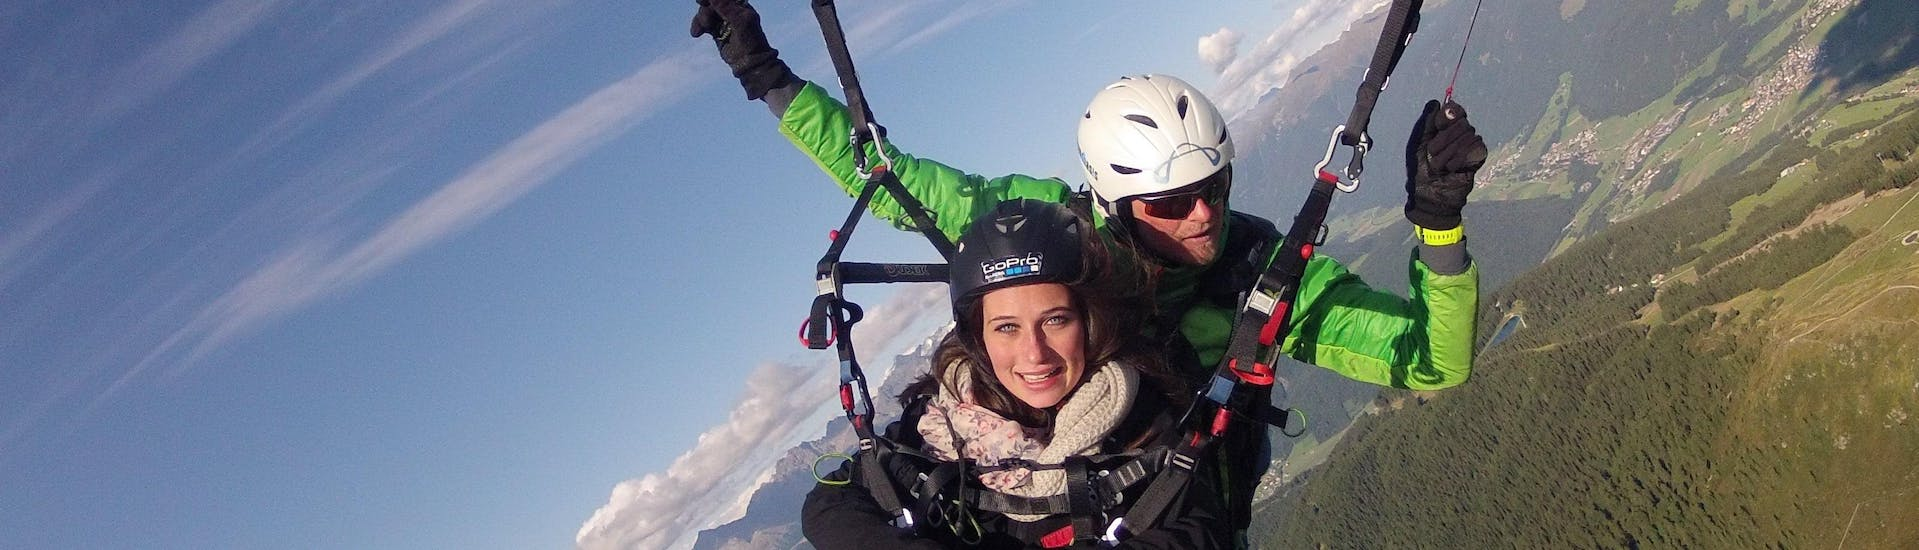 During the Tandem Paragliding over Campo Tures from Acereto with Tandemflights Kronplatz, a young woman is enjoying the view over the surrounding mountain scenery.